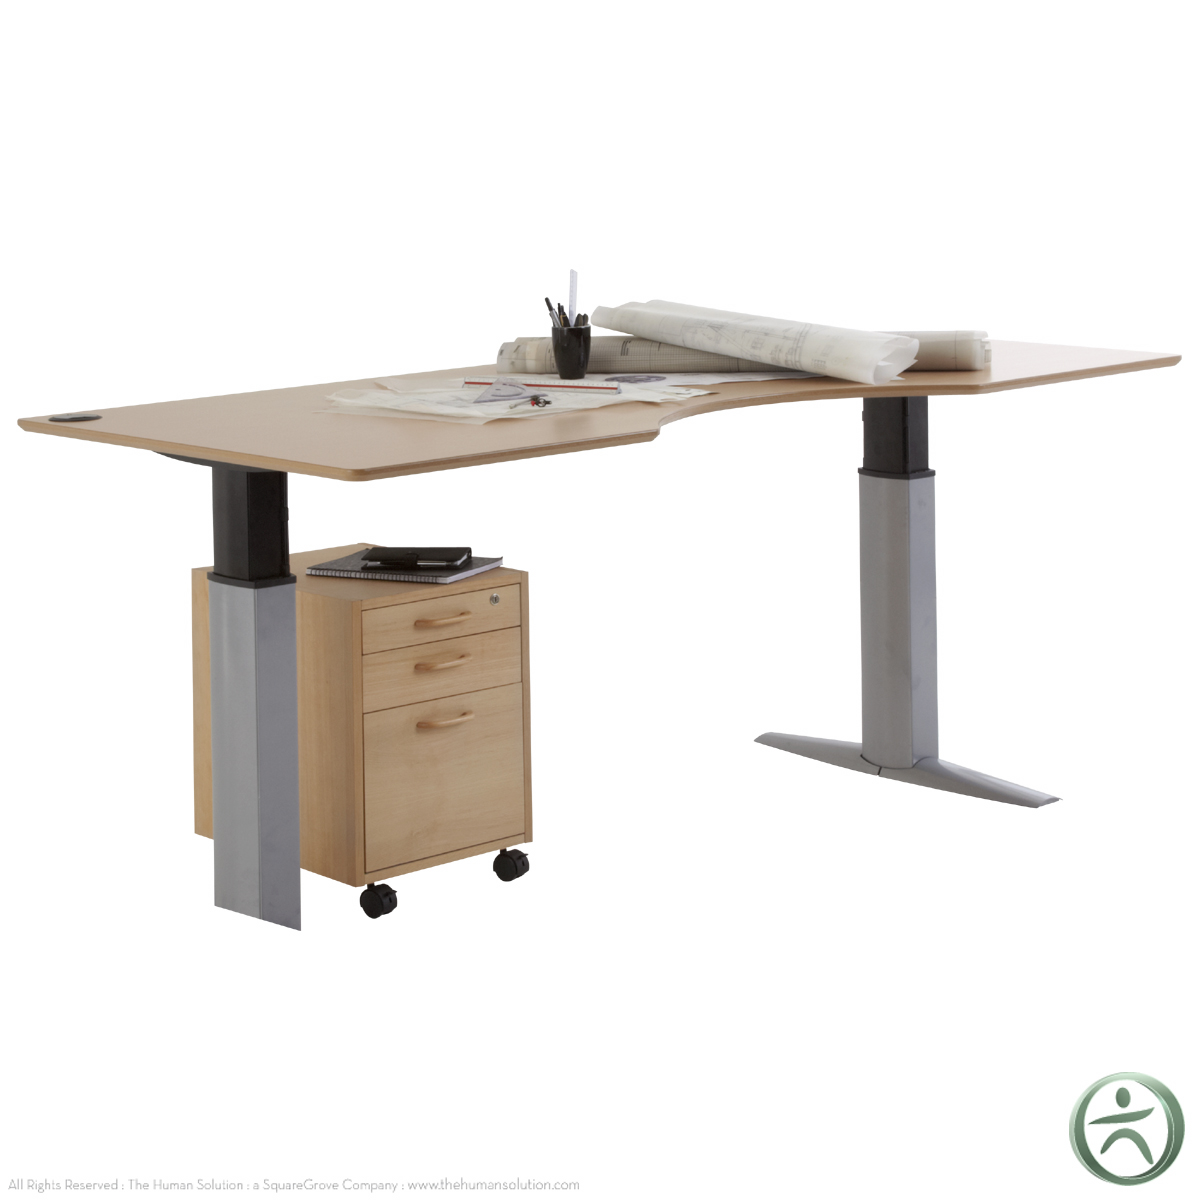 Conset 501 23 Laminate Electric 26 46 5 Sit Stand Desk